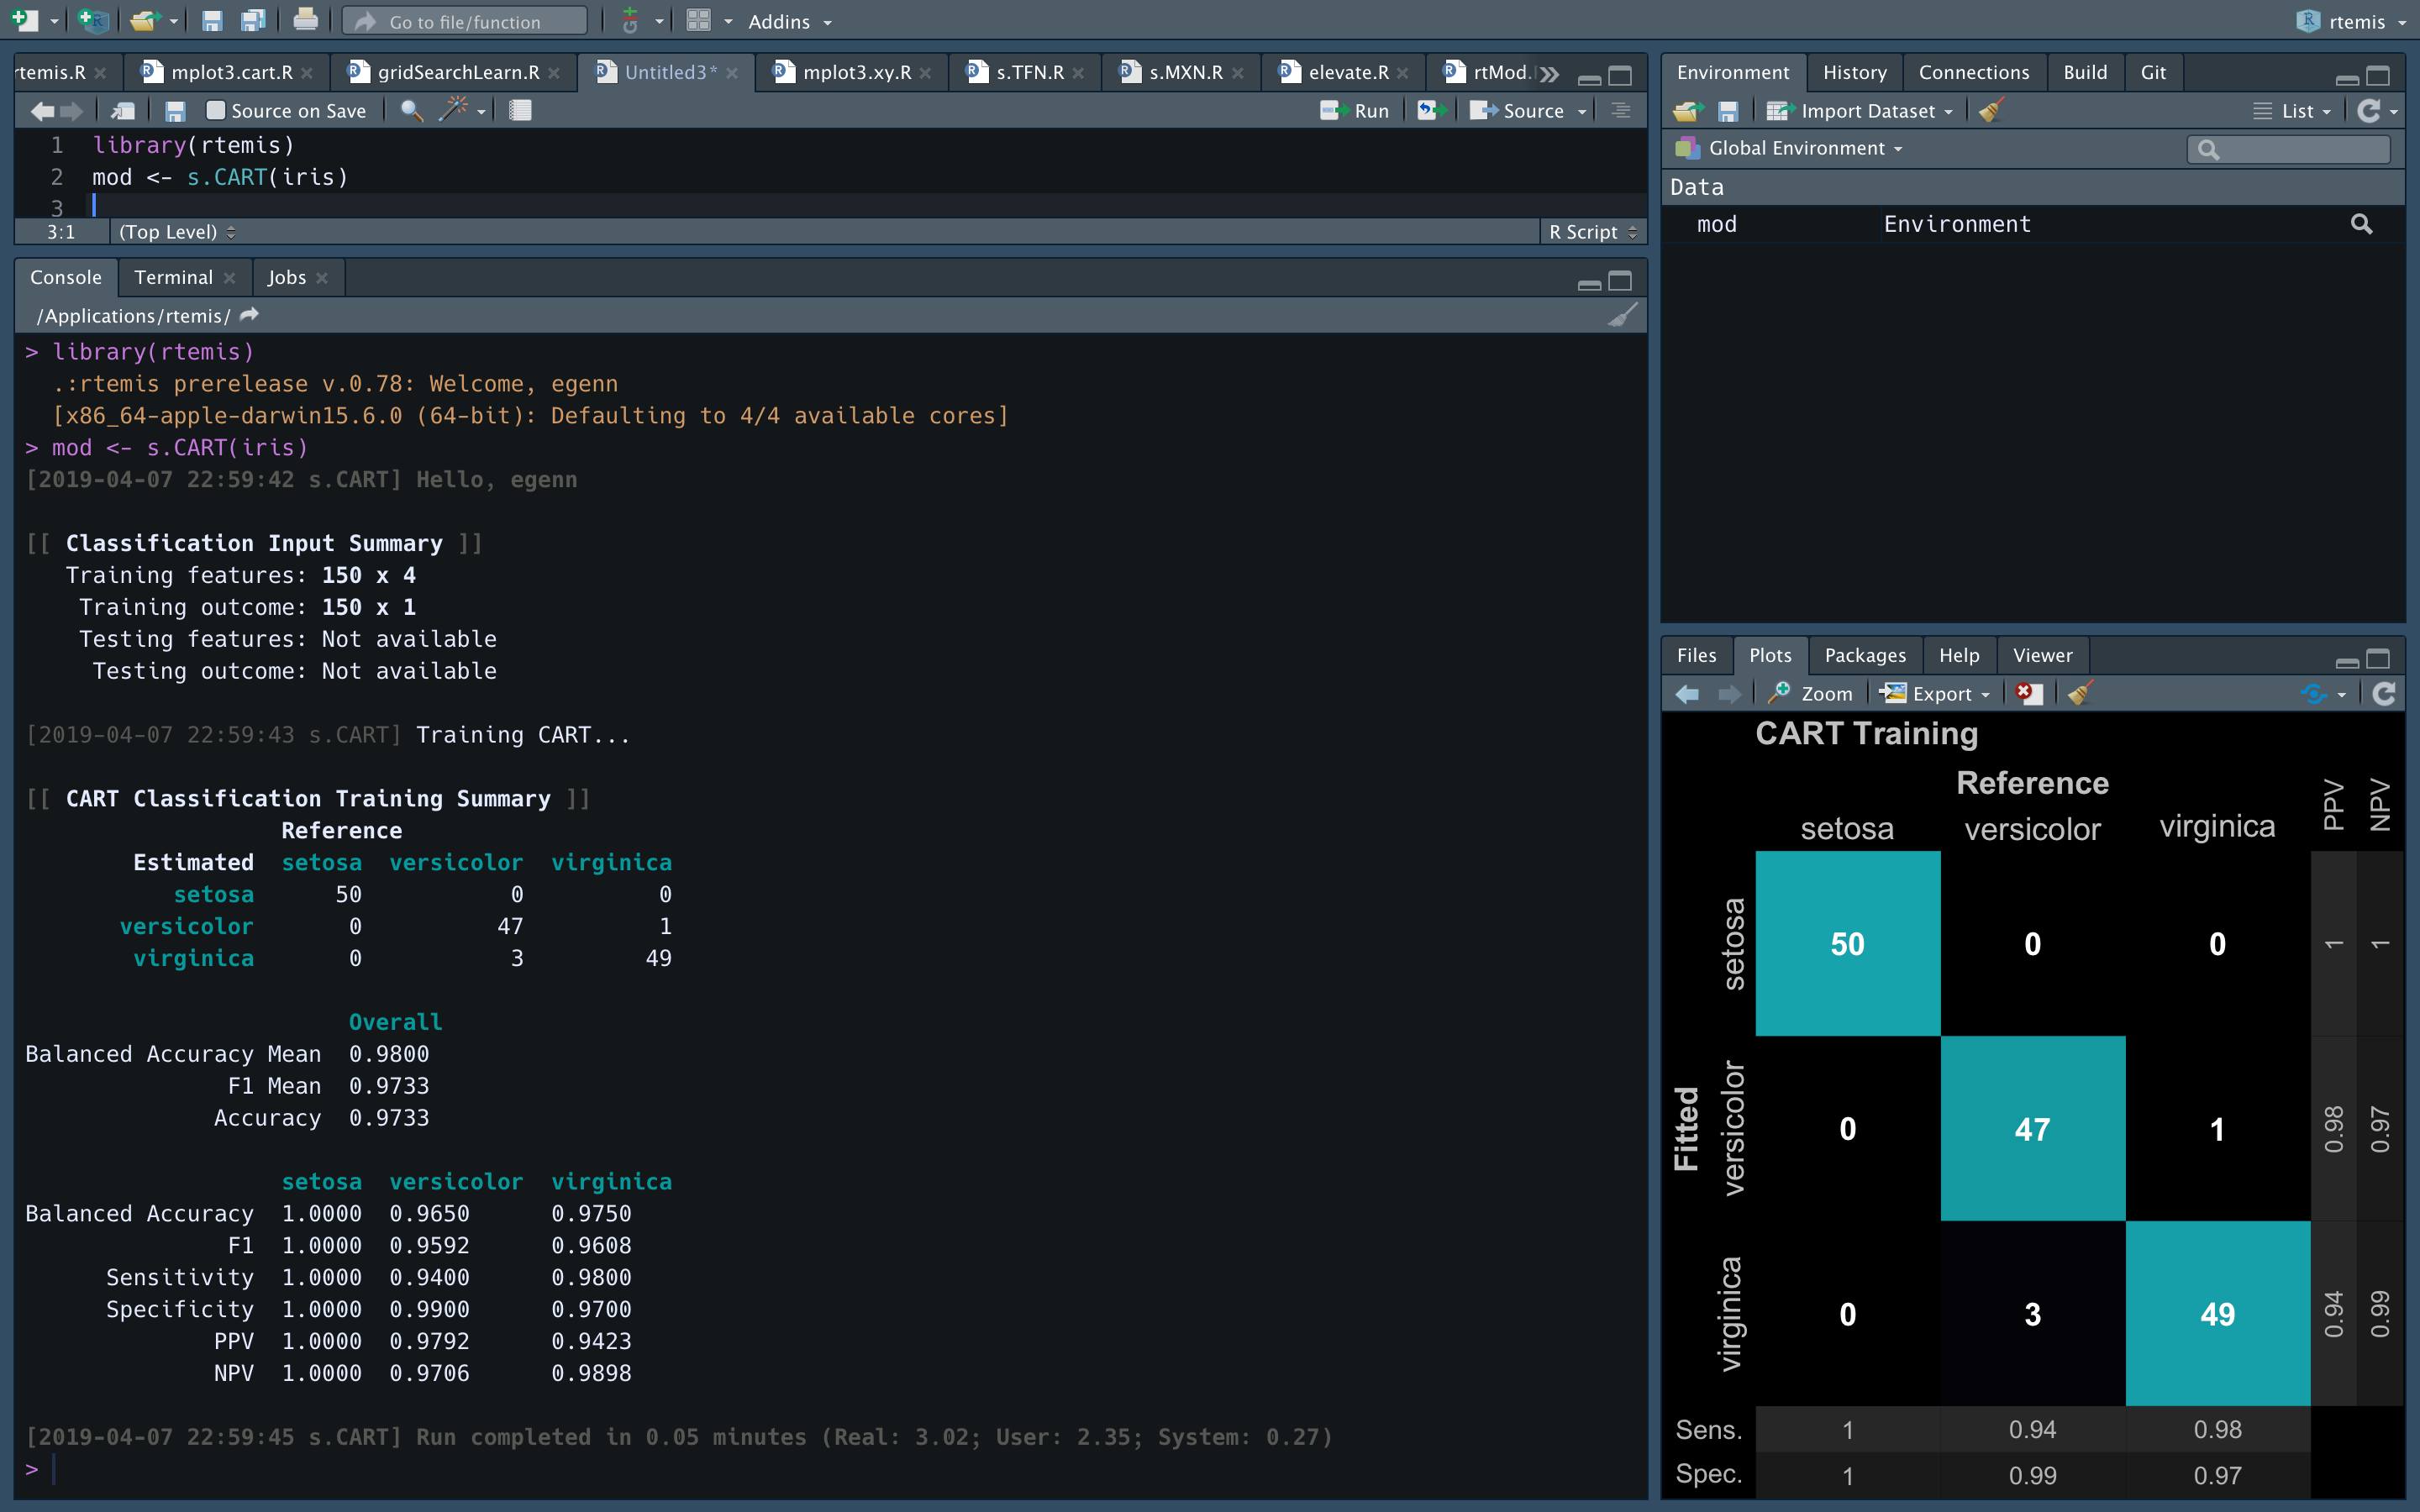 rtemis running in RStudio with the (recommended) dark theme